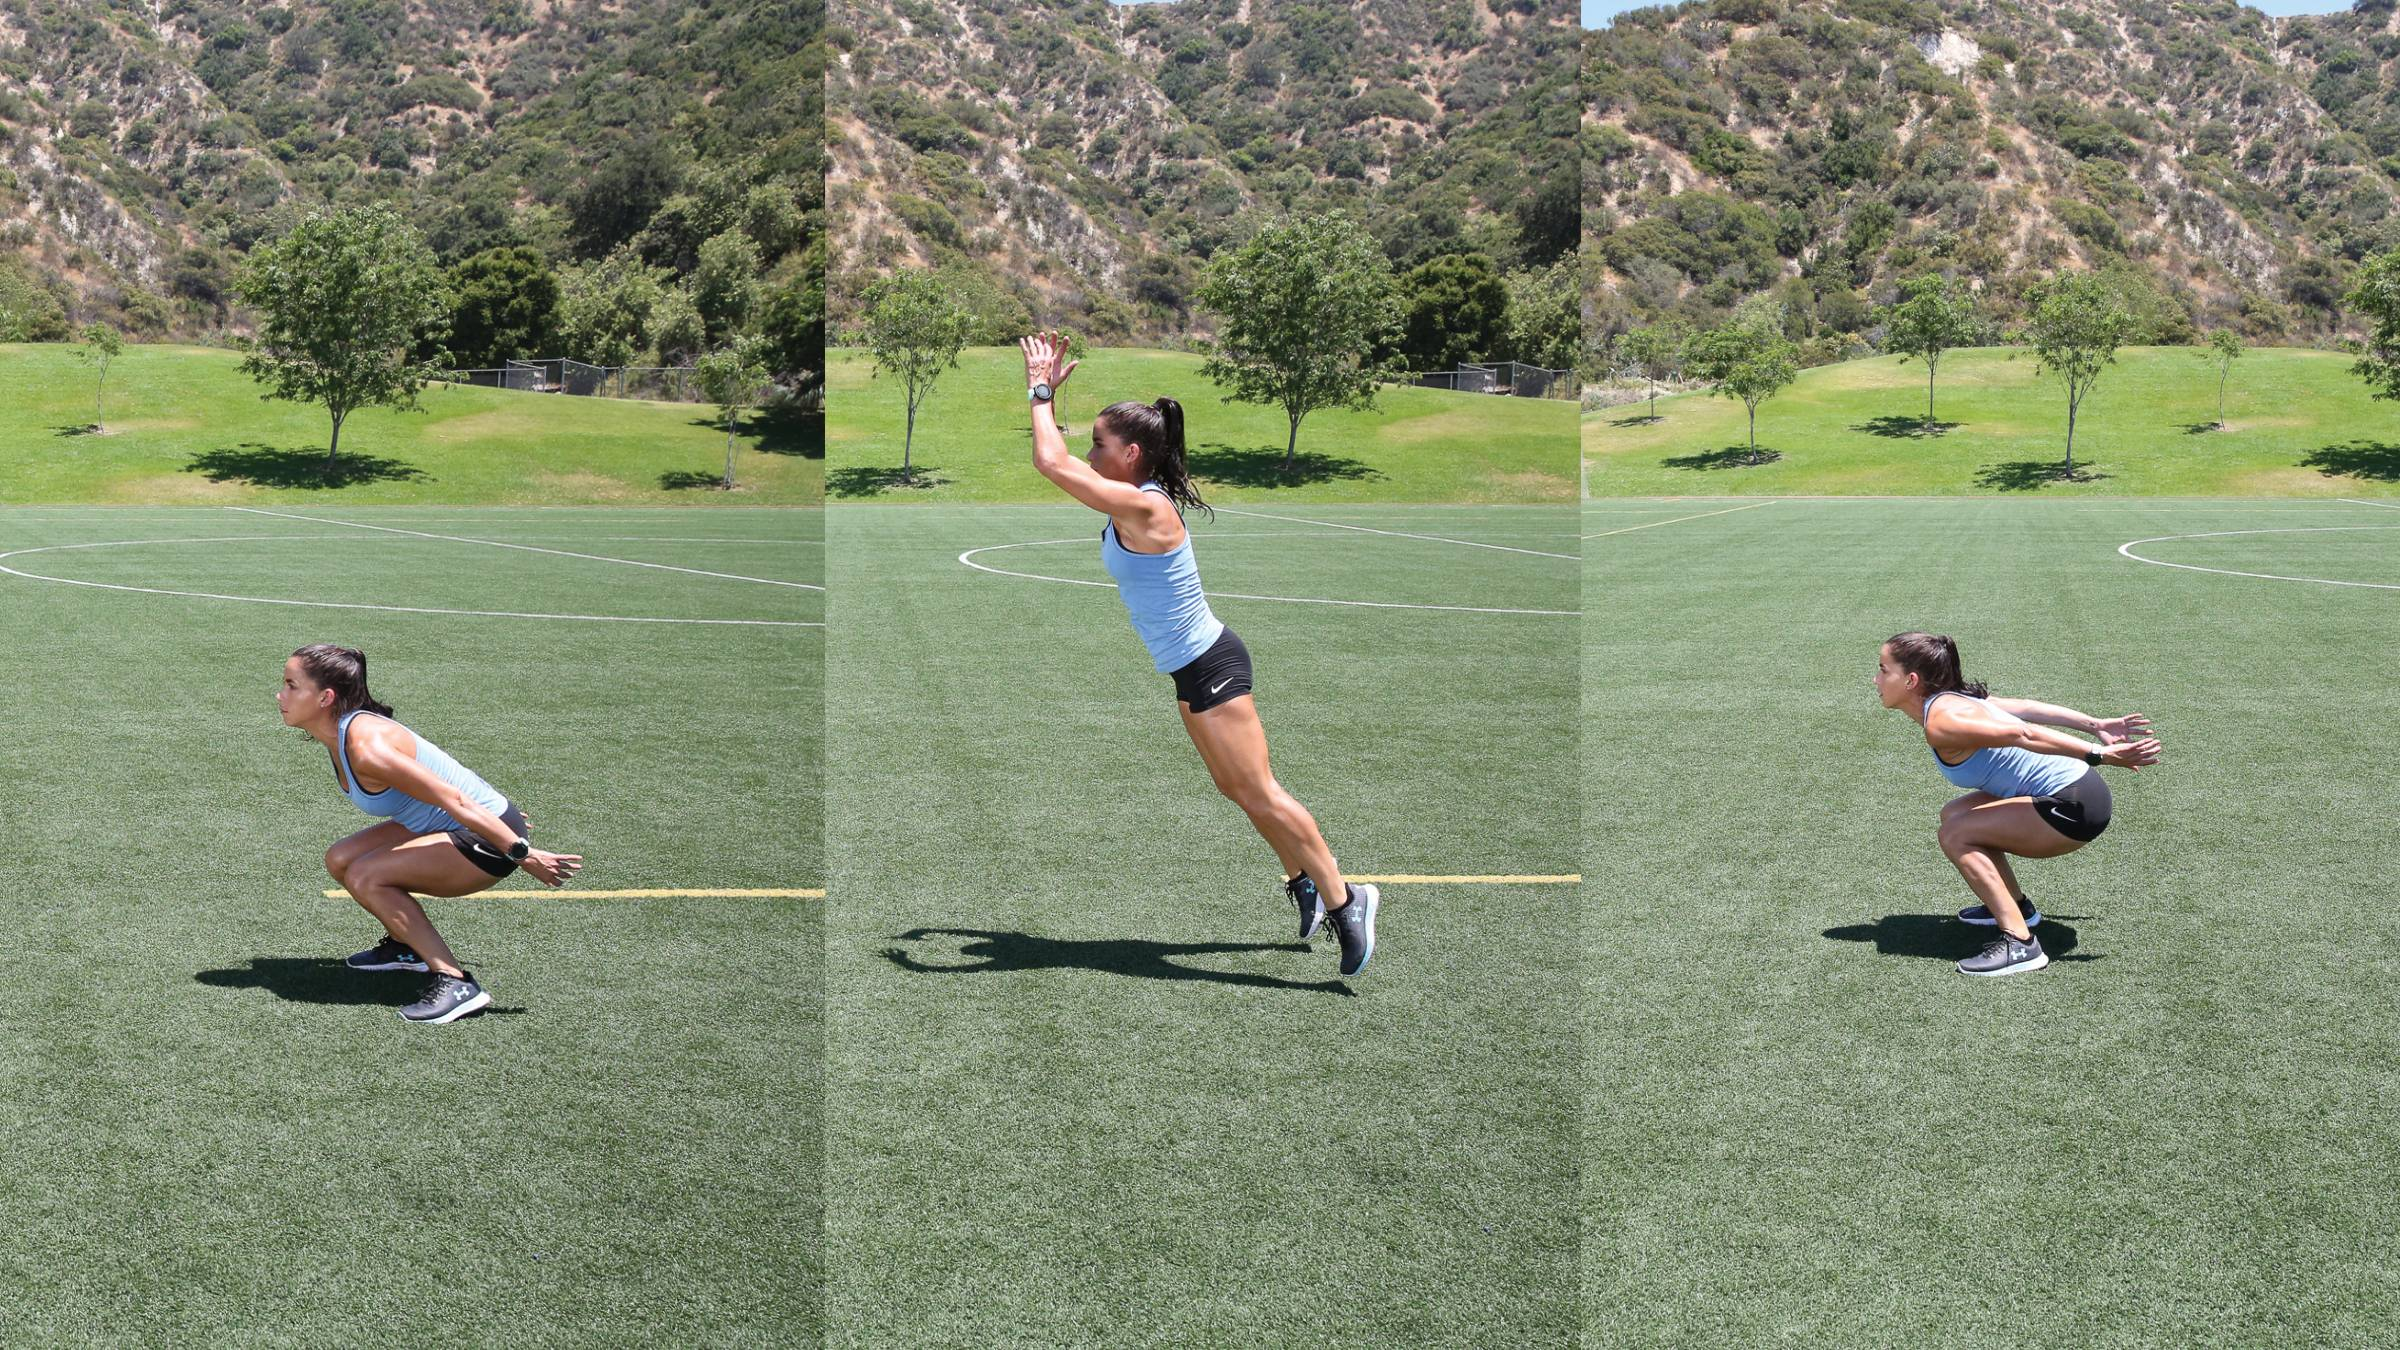 Composite of woman perfoming a long jump